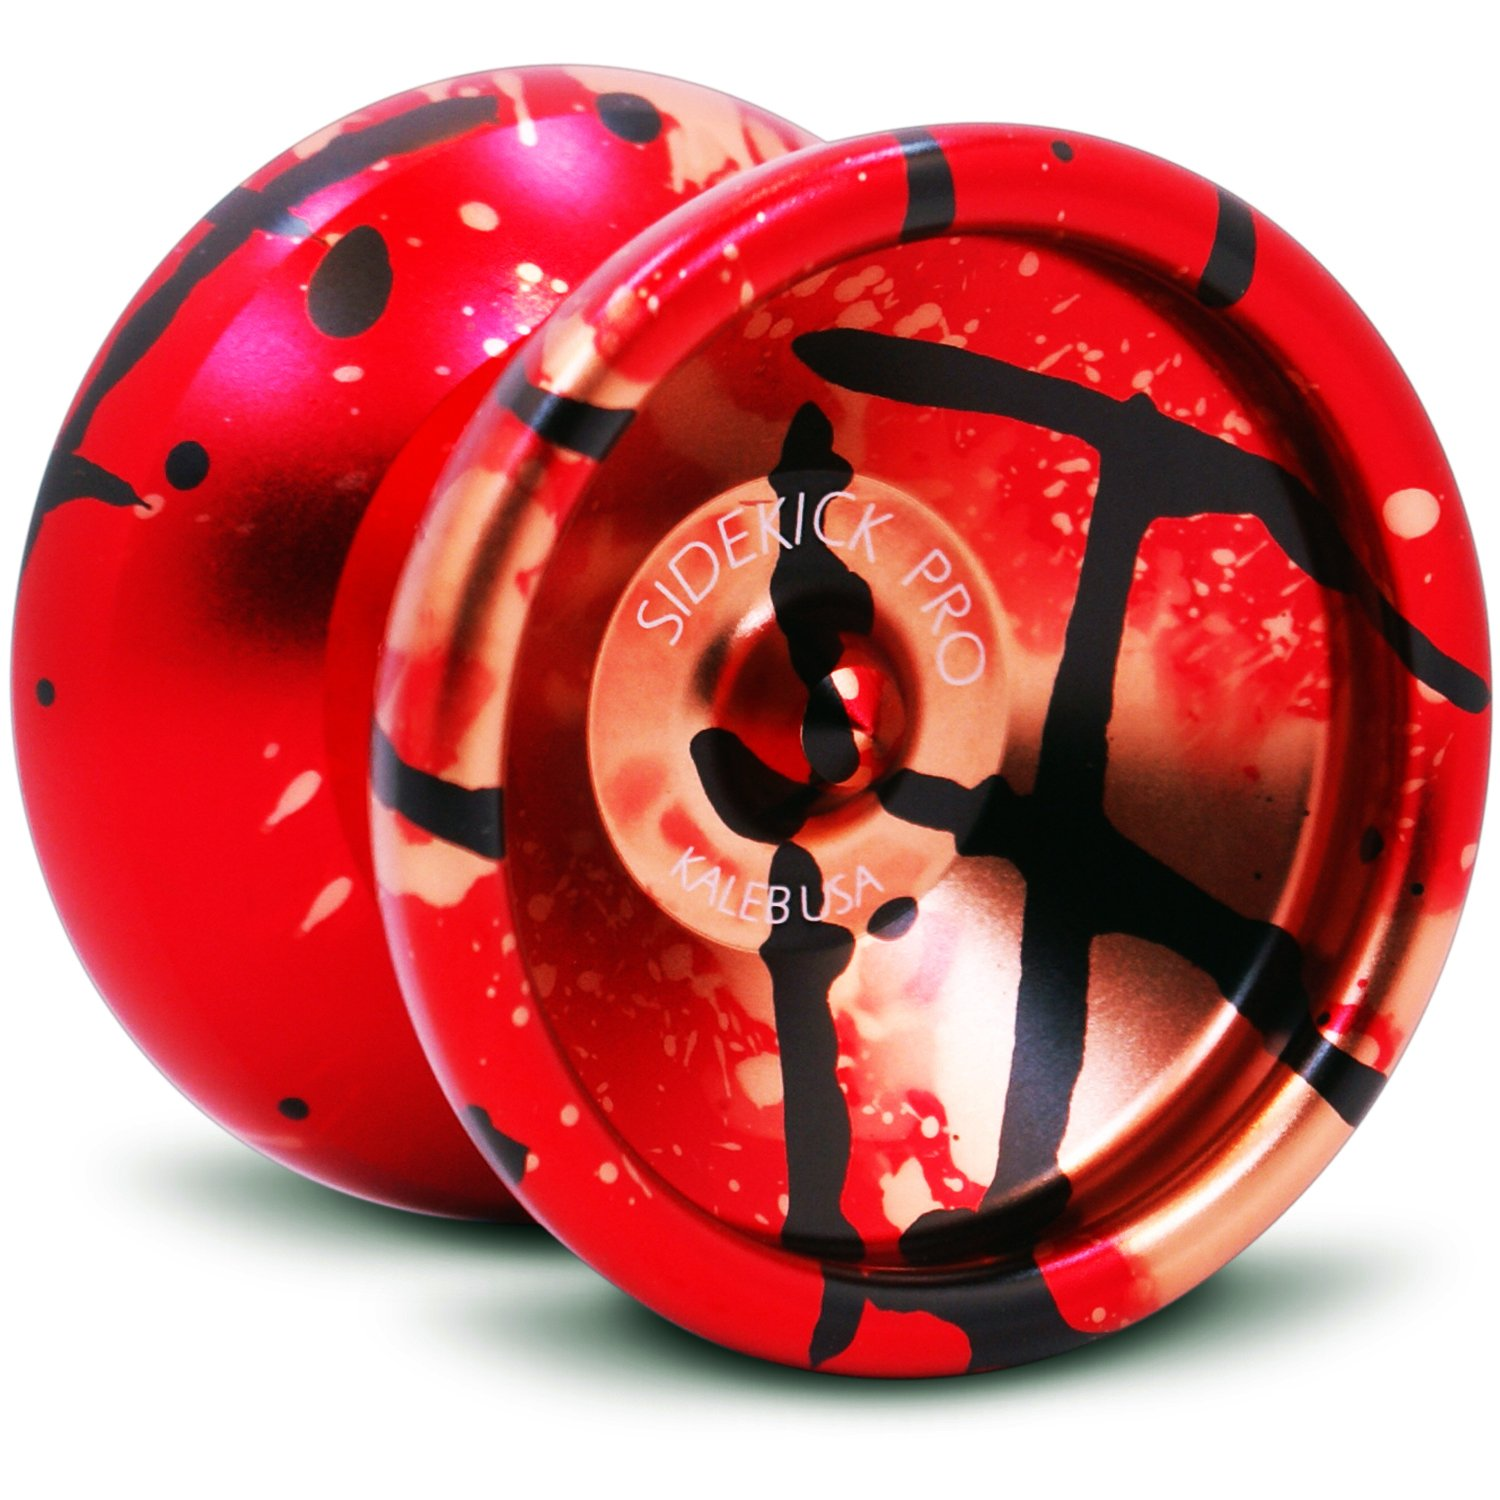 Sidekick Yoyo Pro Red Black Gold Splashes Professional Aluminum UNresponsive 7S YoYo by Sidekick Yoyo